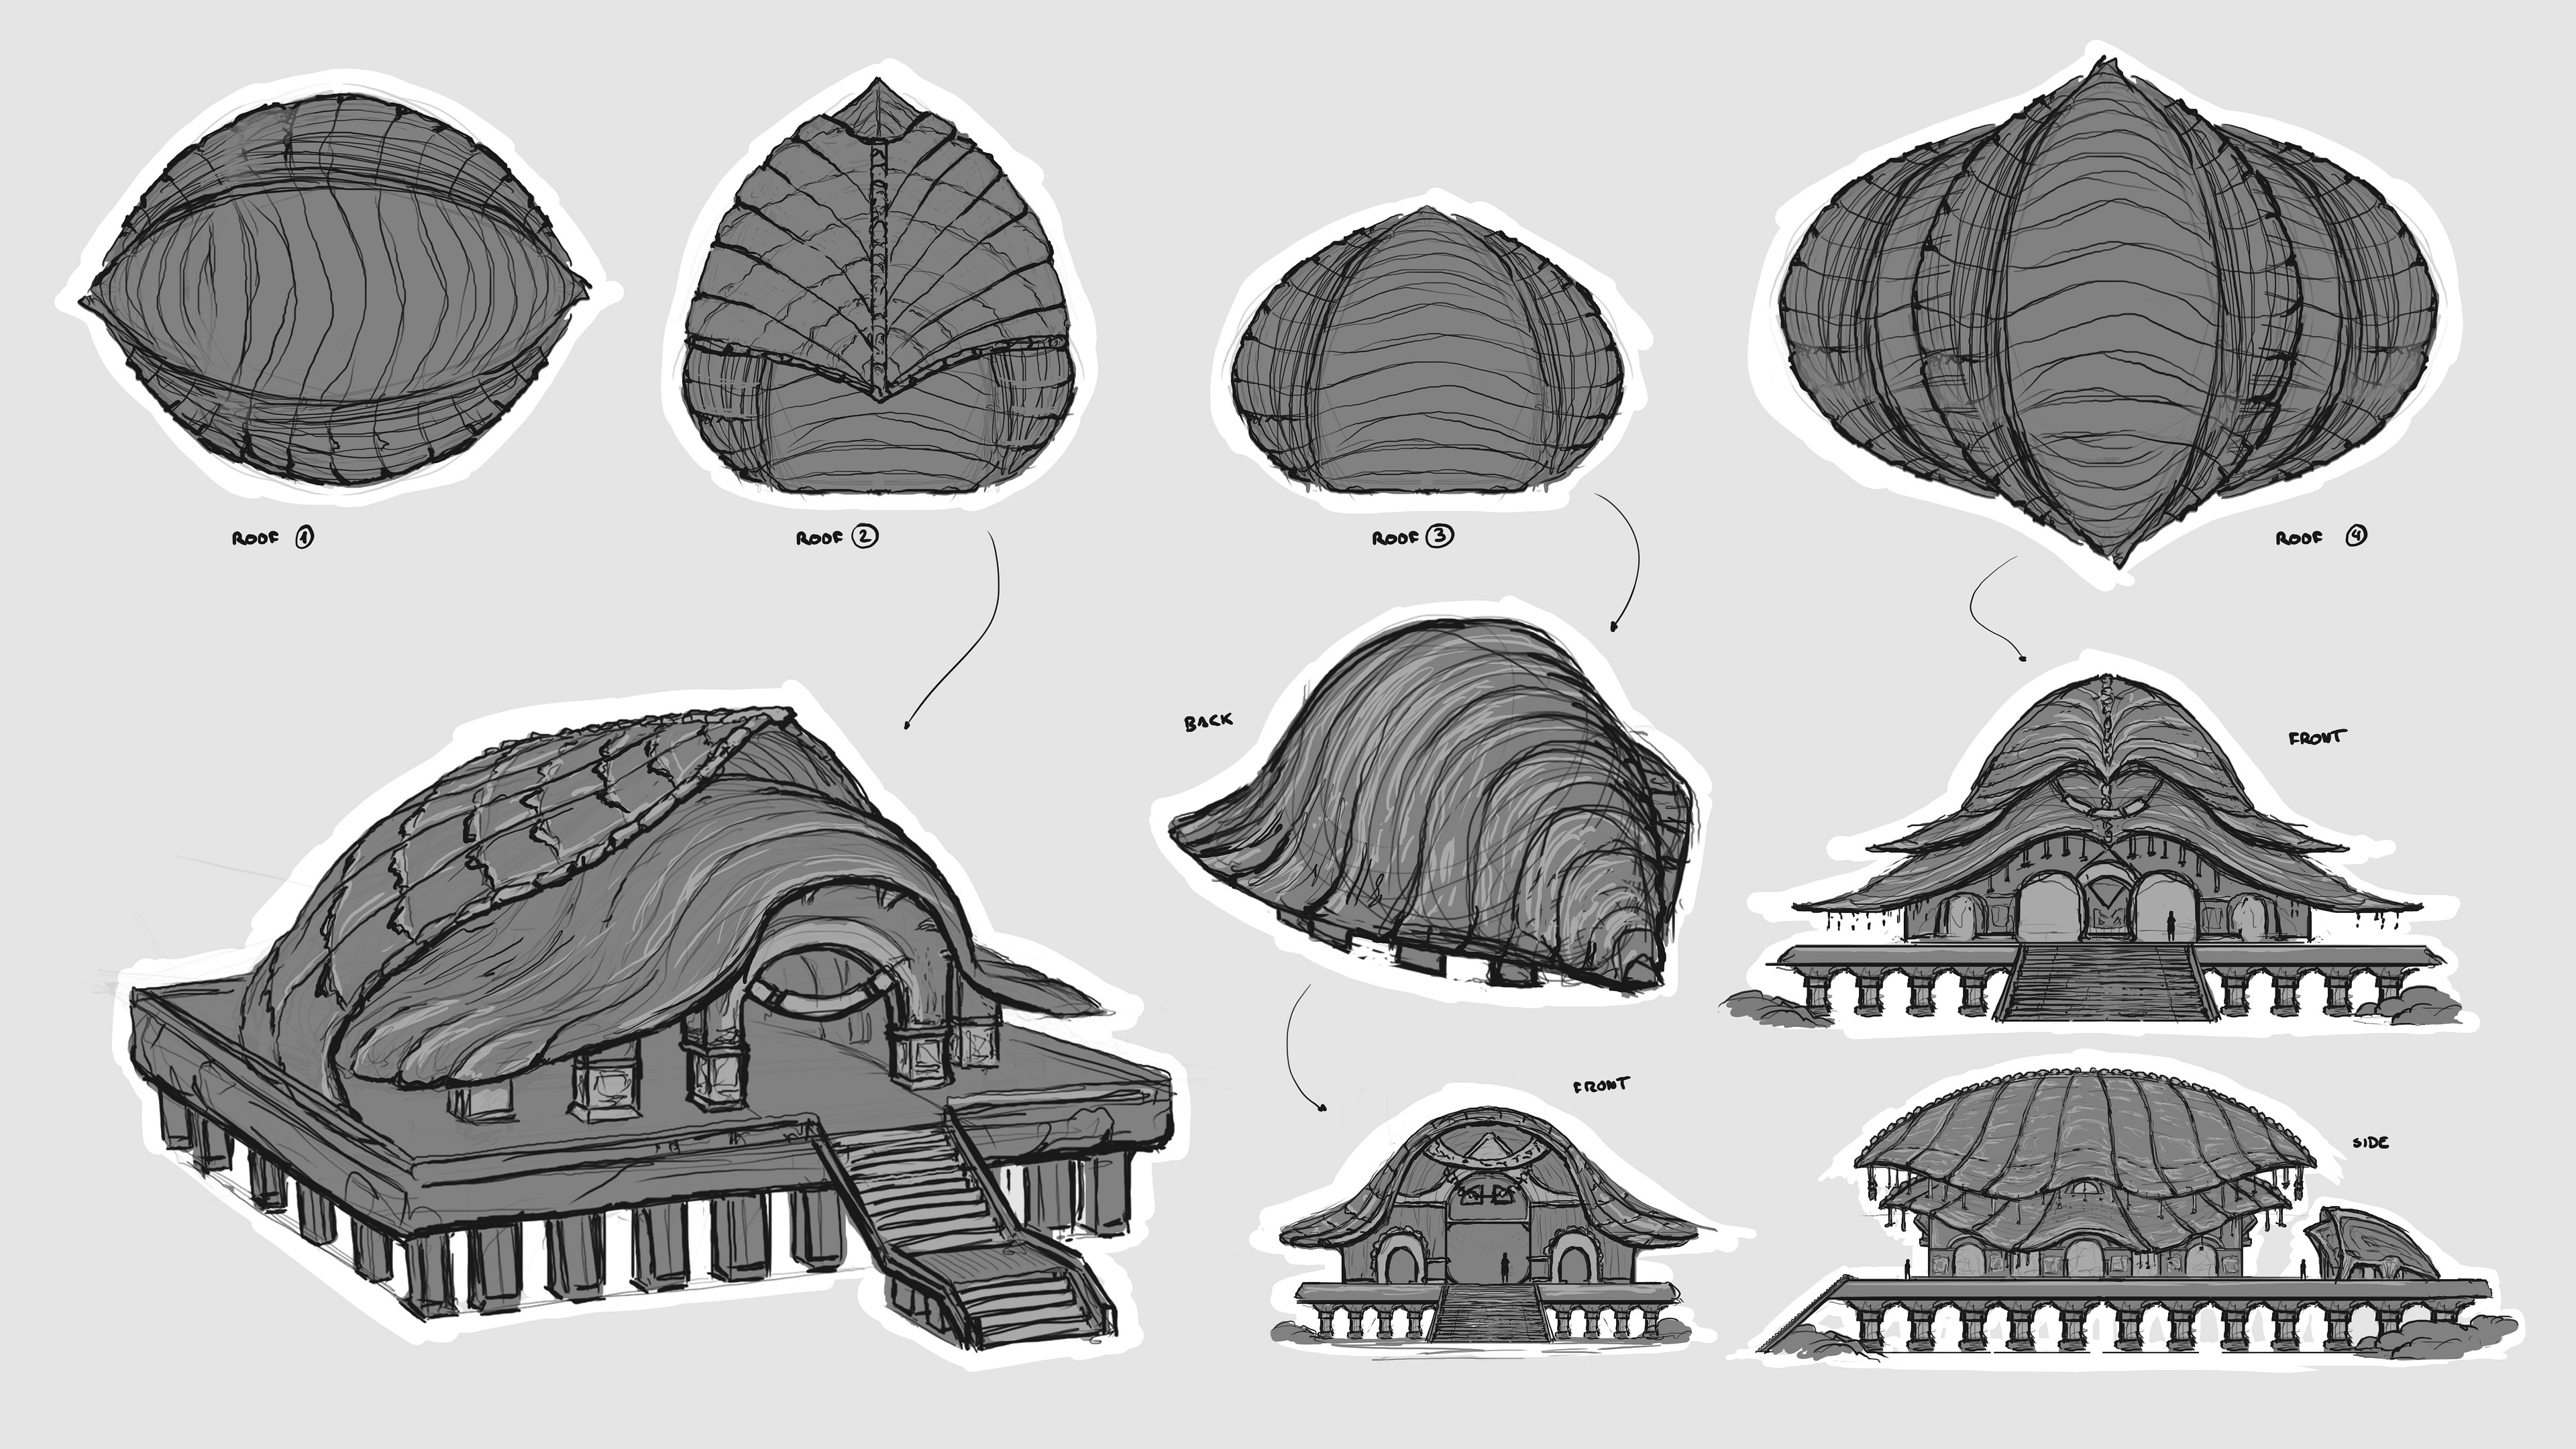 Roof design exploration sketches